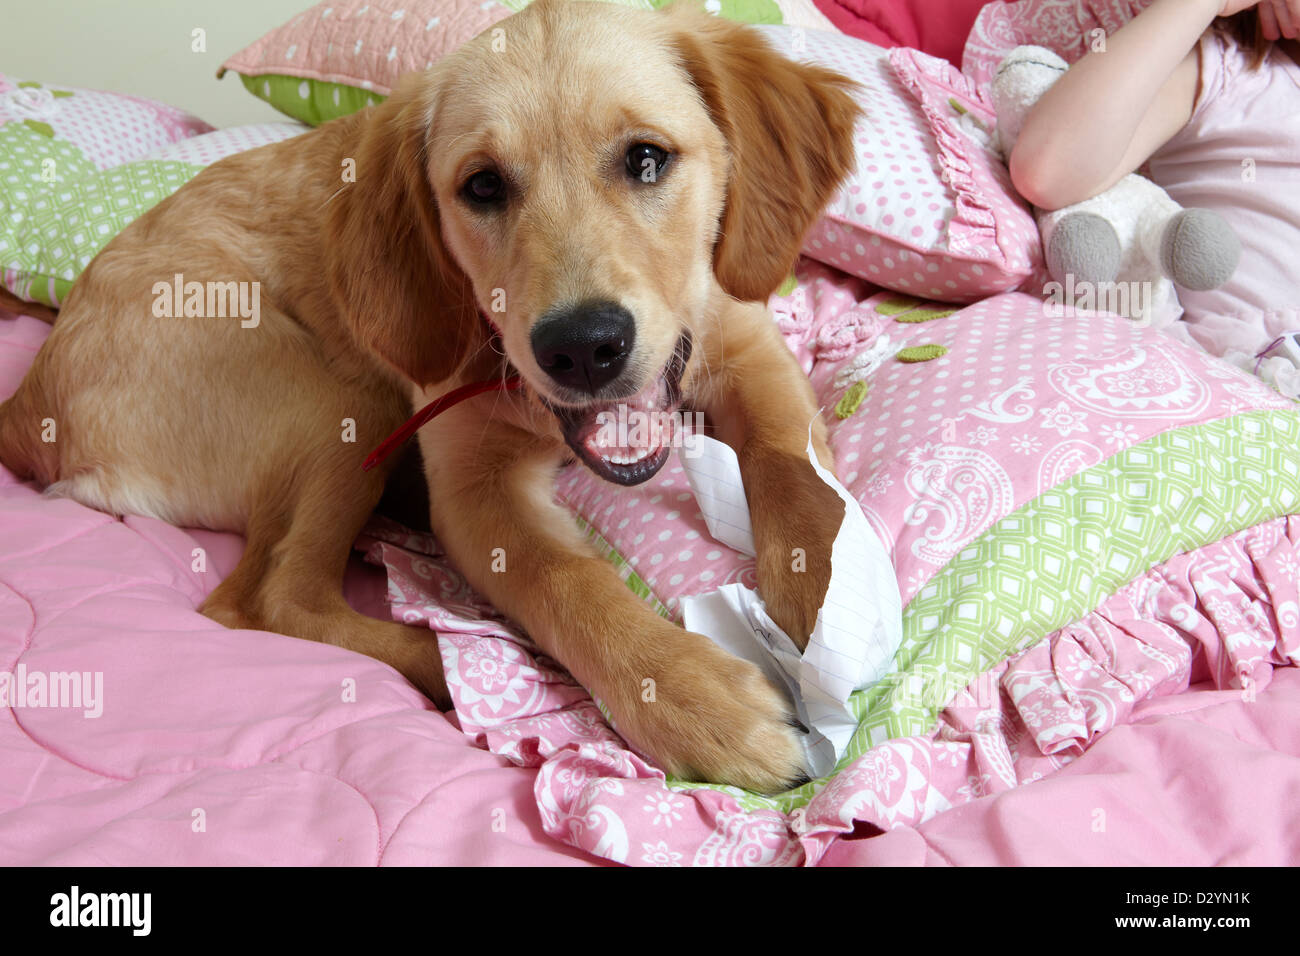 Golden Retriever puppy destroying paper, home work on kids bed - Stock Image